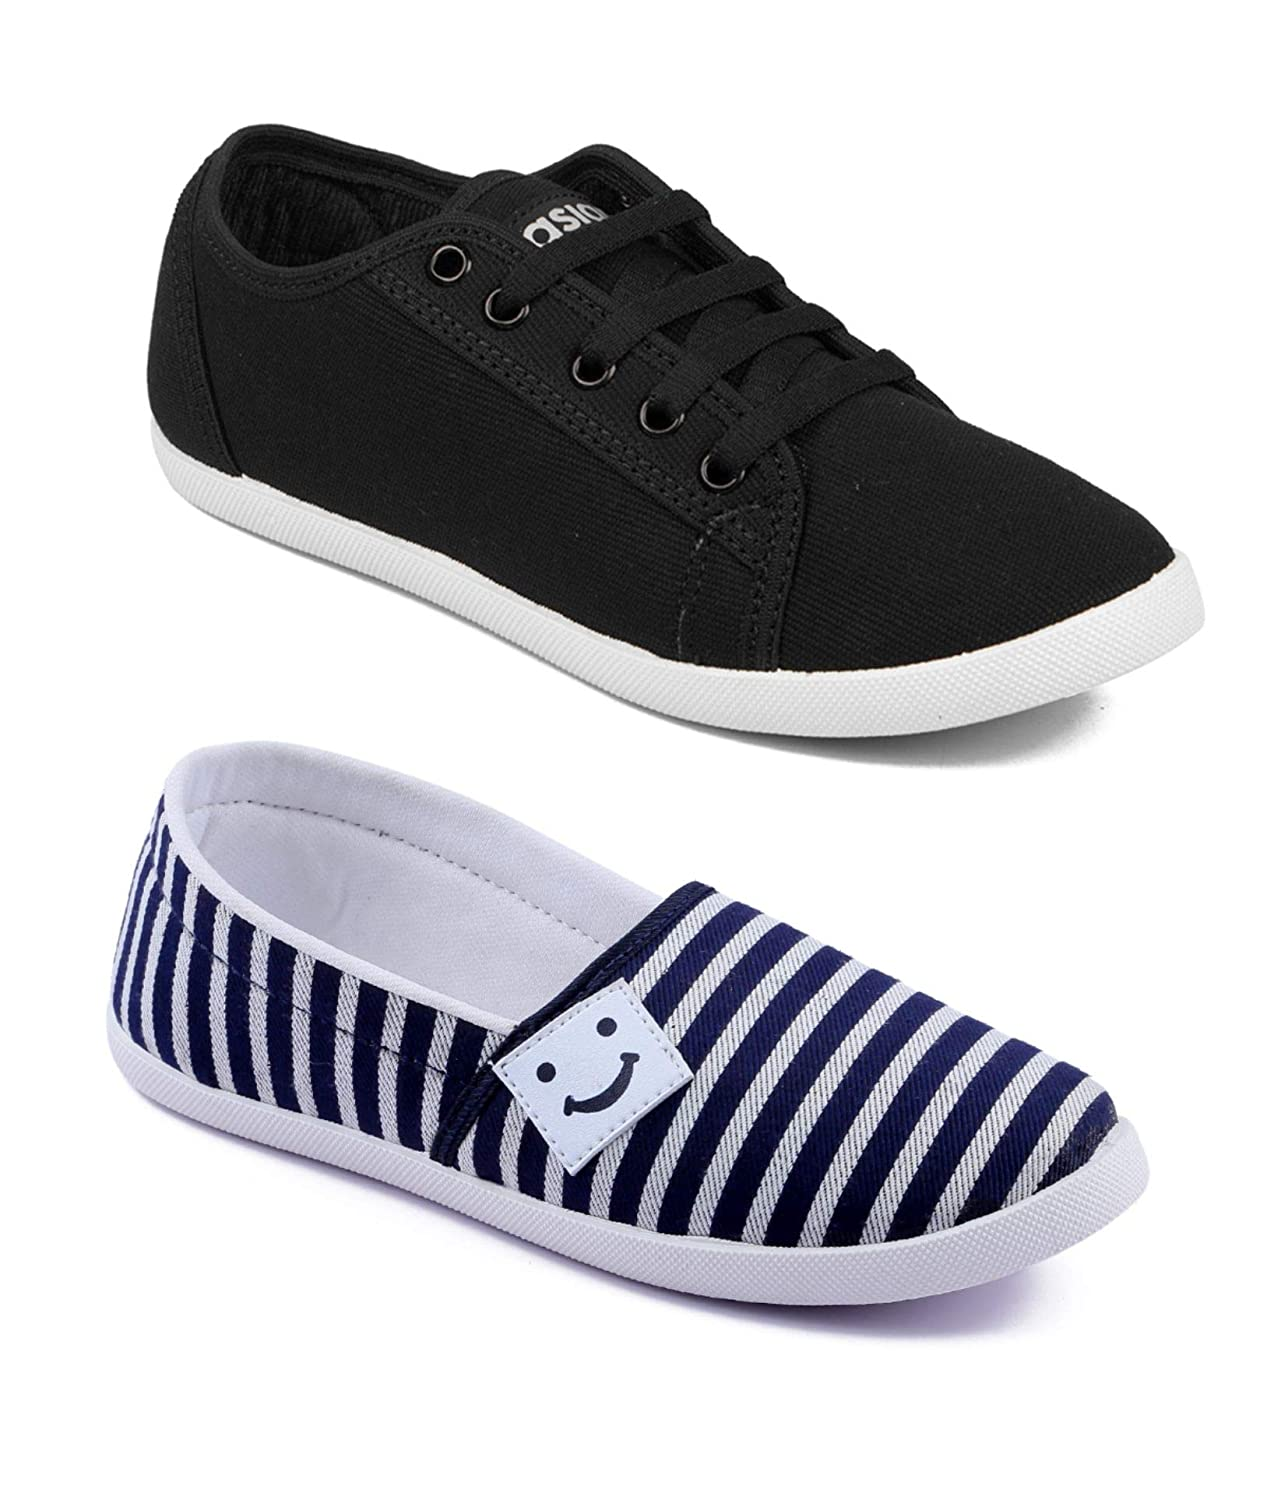 Canvas Casual Walking Shoes Running Slip-on Sneakers